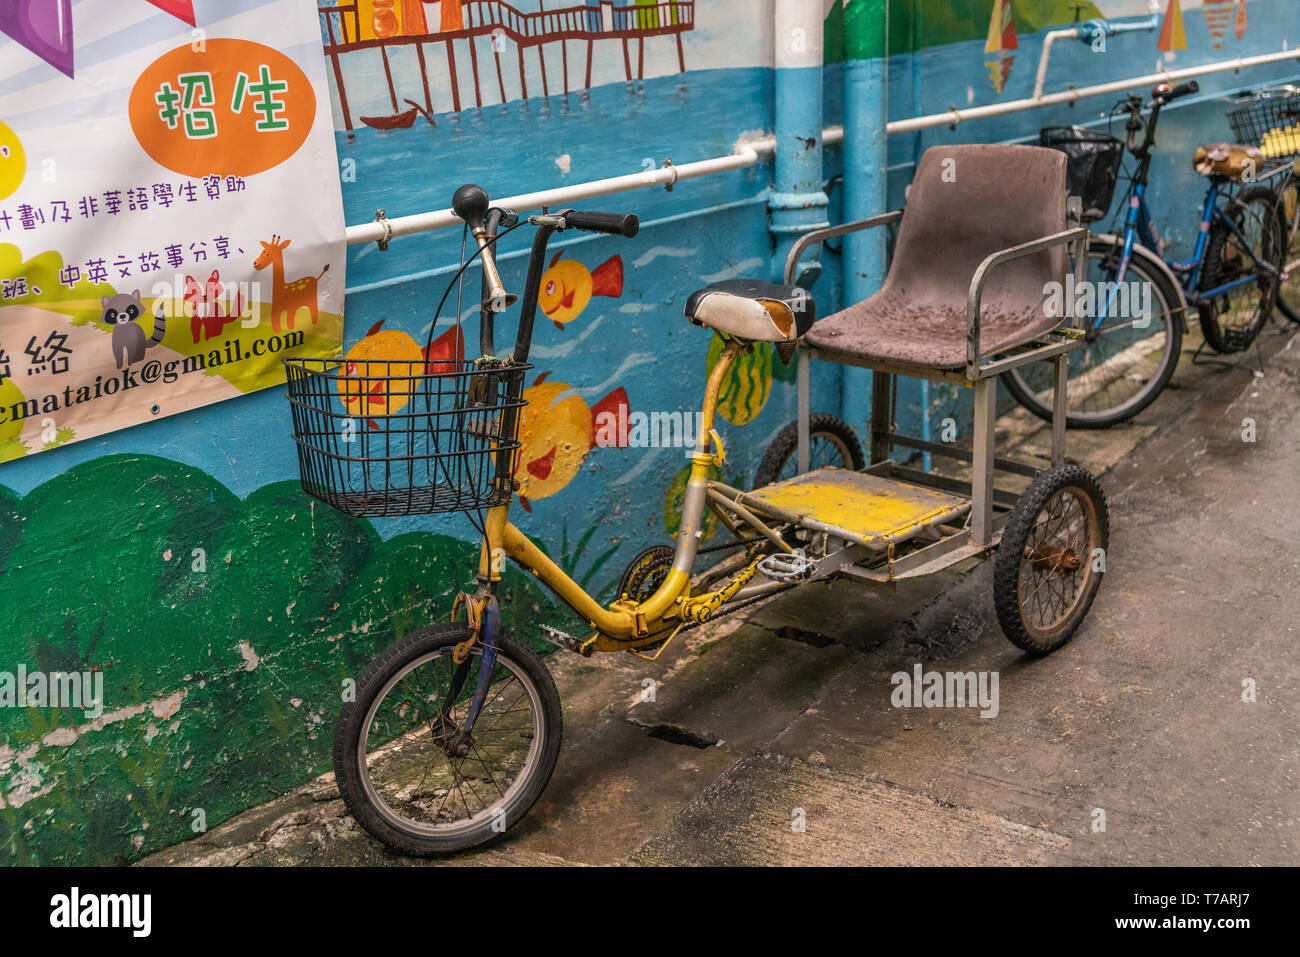 Hong Kong, China - March 7, 2019: Tai O Fishing village. Tricycle one-guest taxi parked in street, for family use to transport elderly disabled family - Stock Image